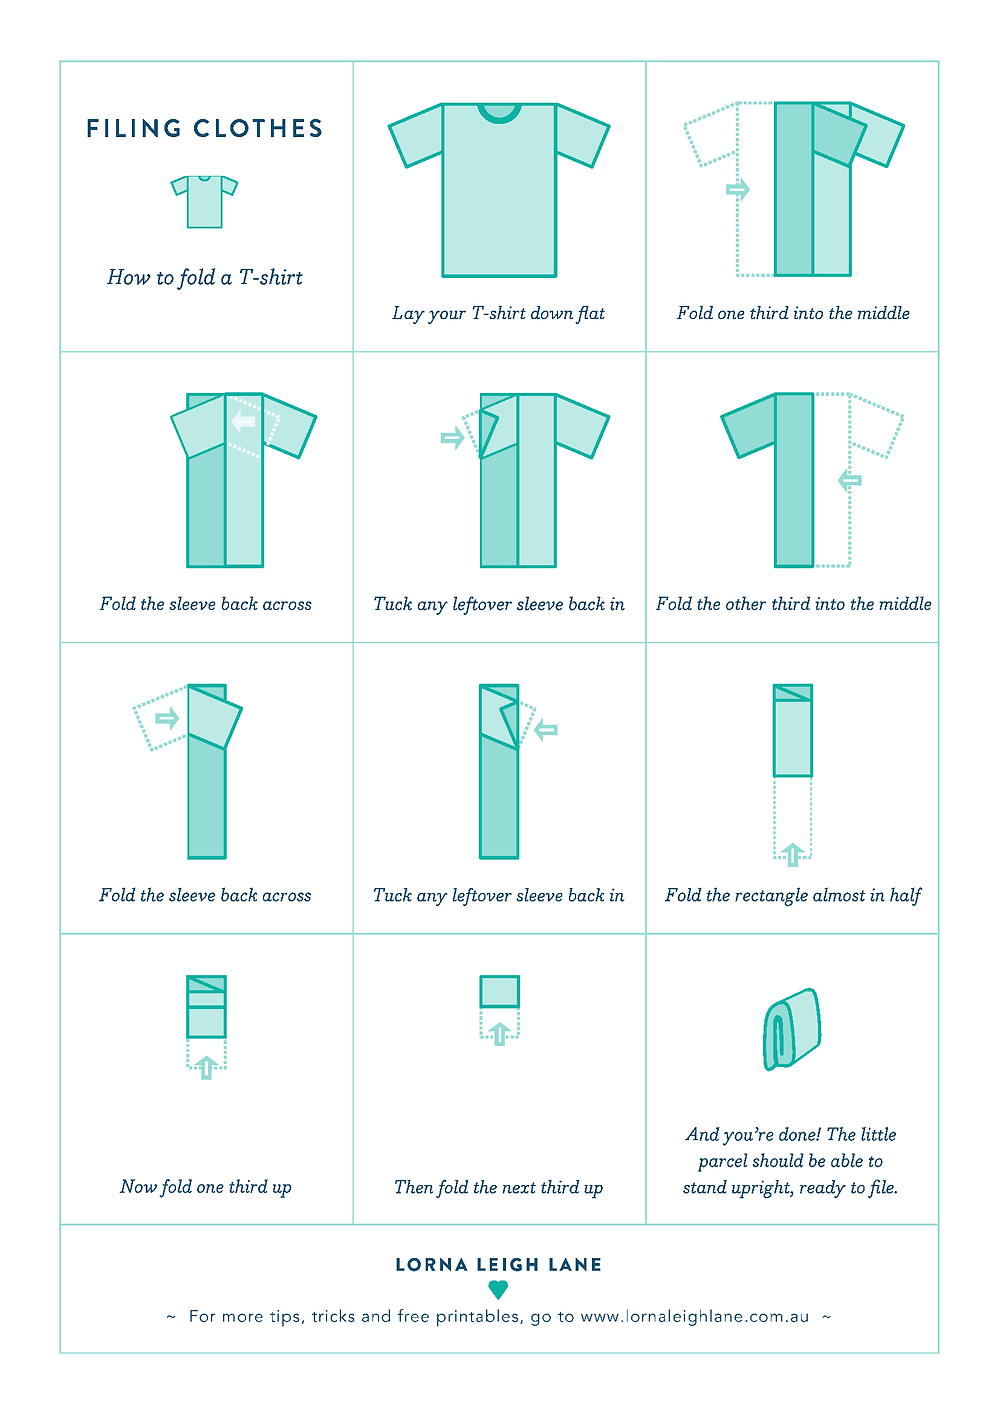 How to fold T-shirts like Marie Kondo